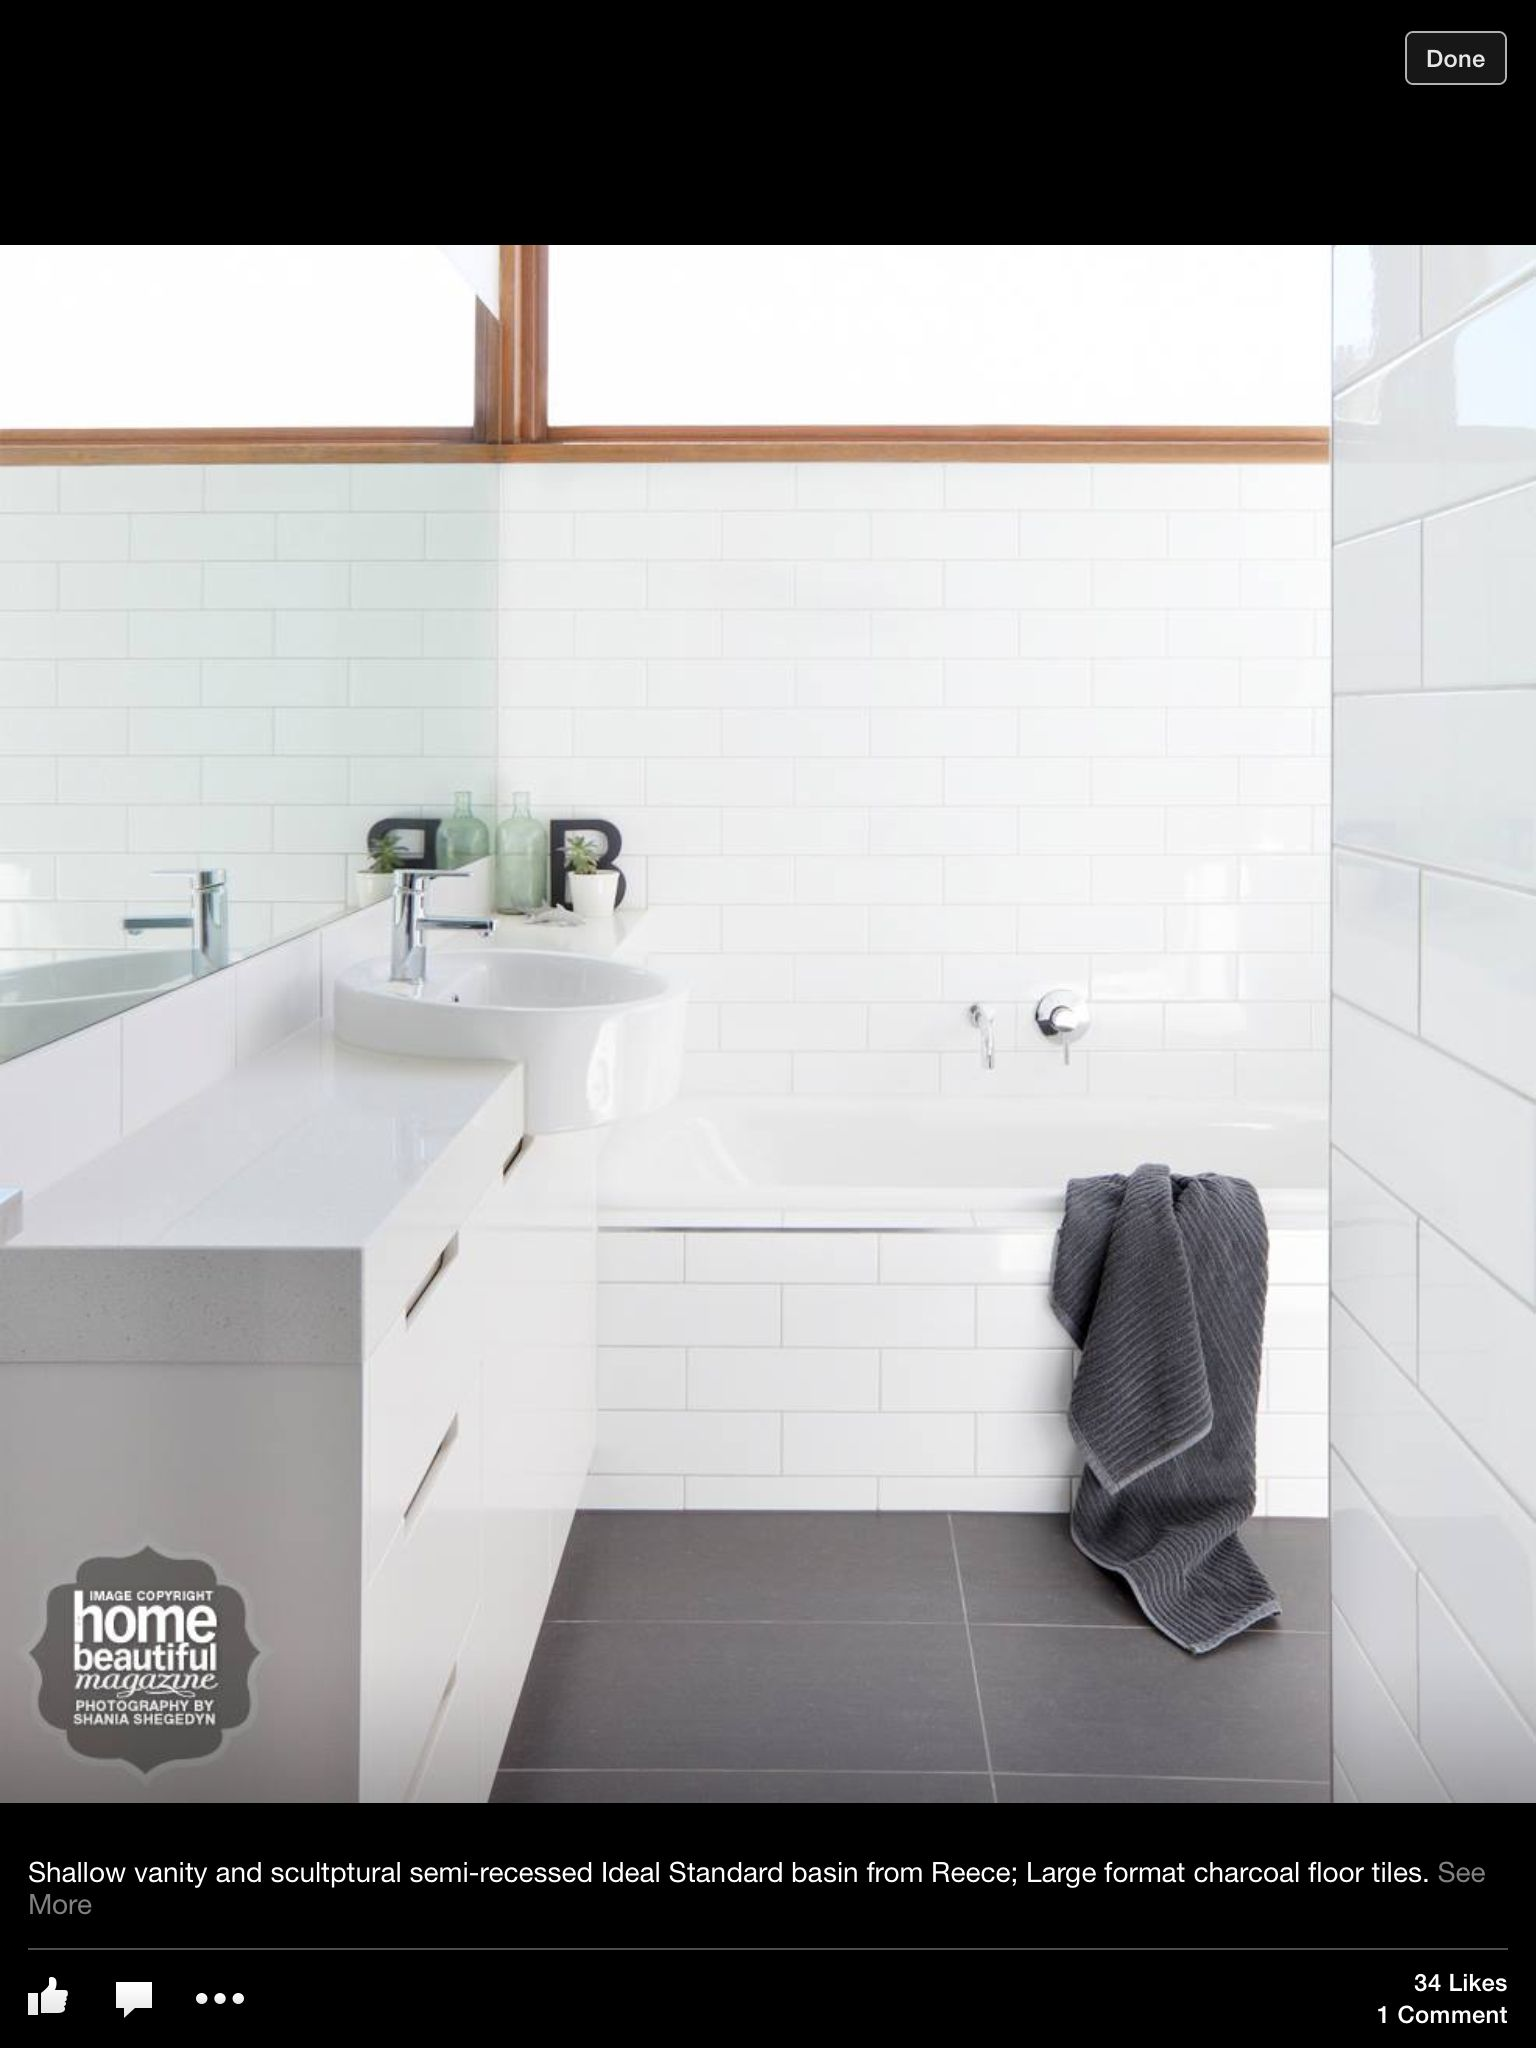 Charcoal Floor Tiles Mirror White On Walls Good For Small Space